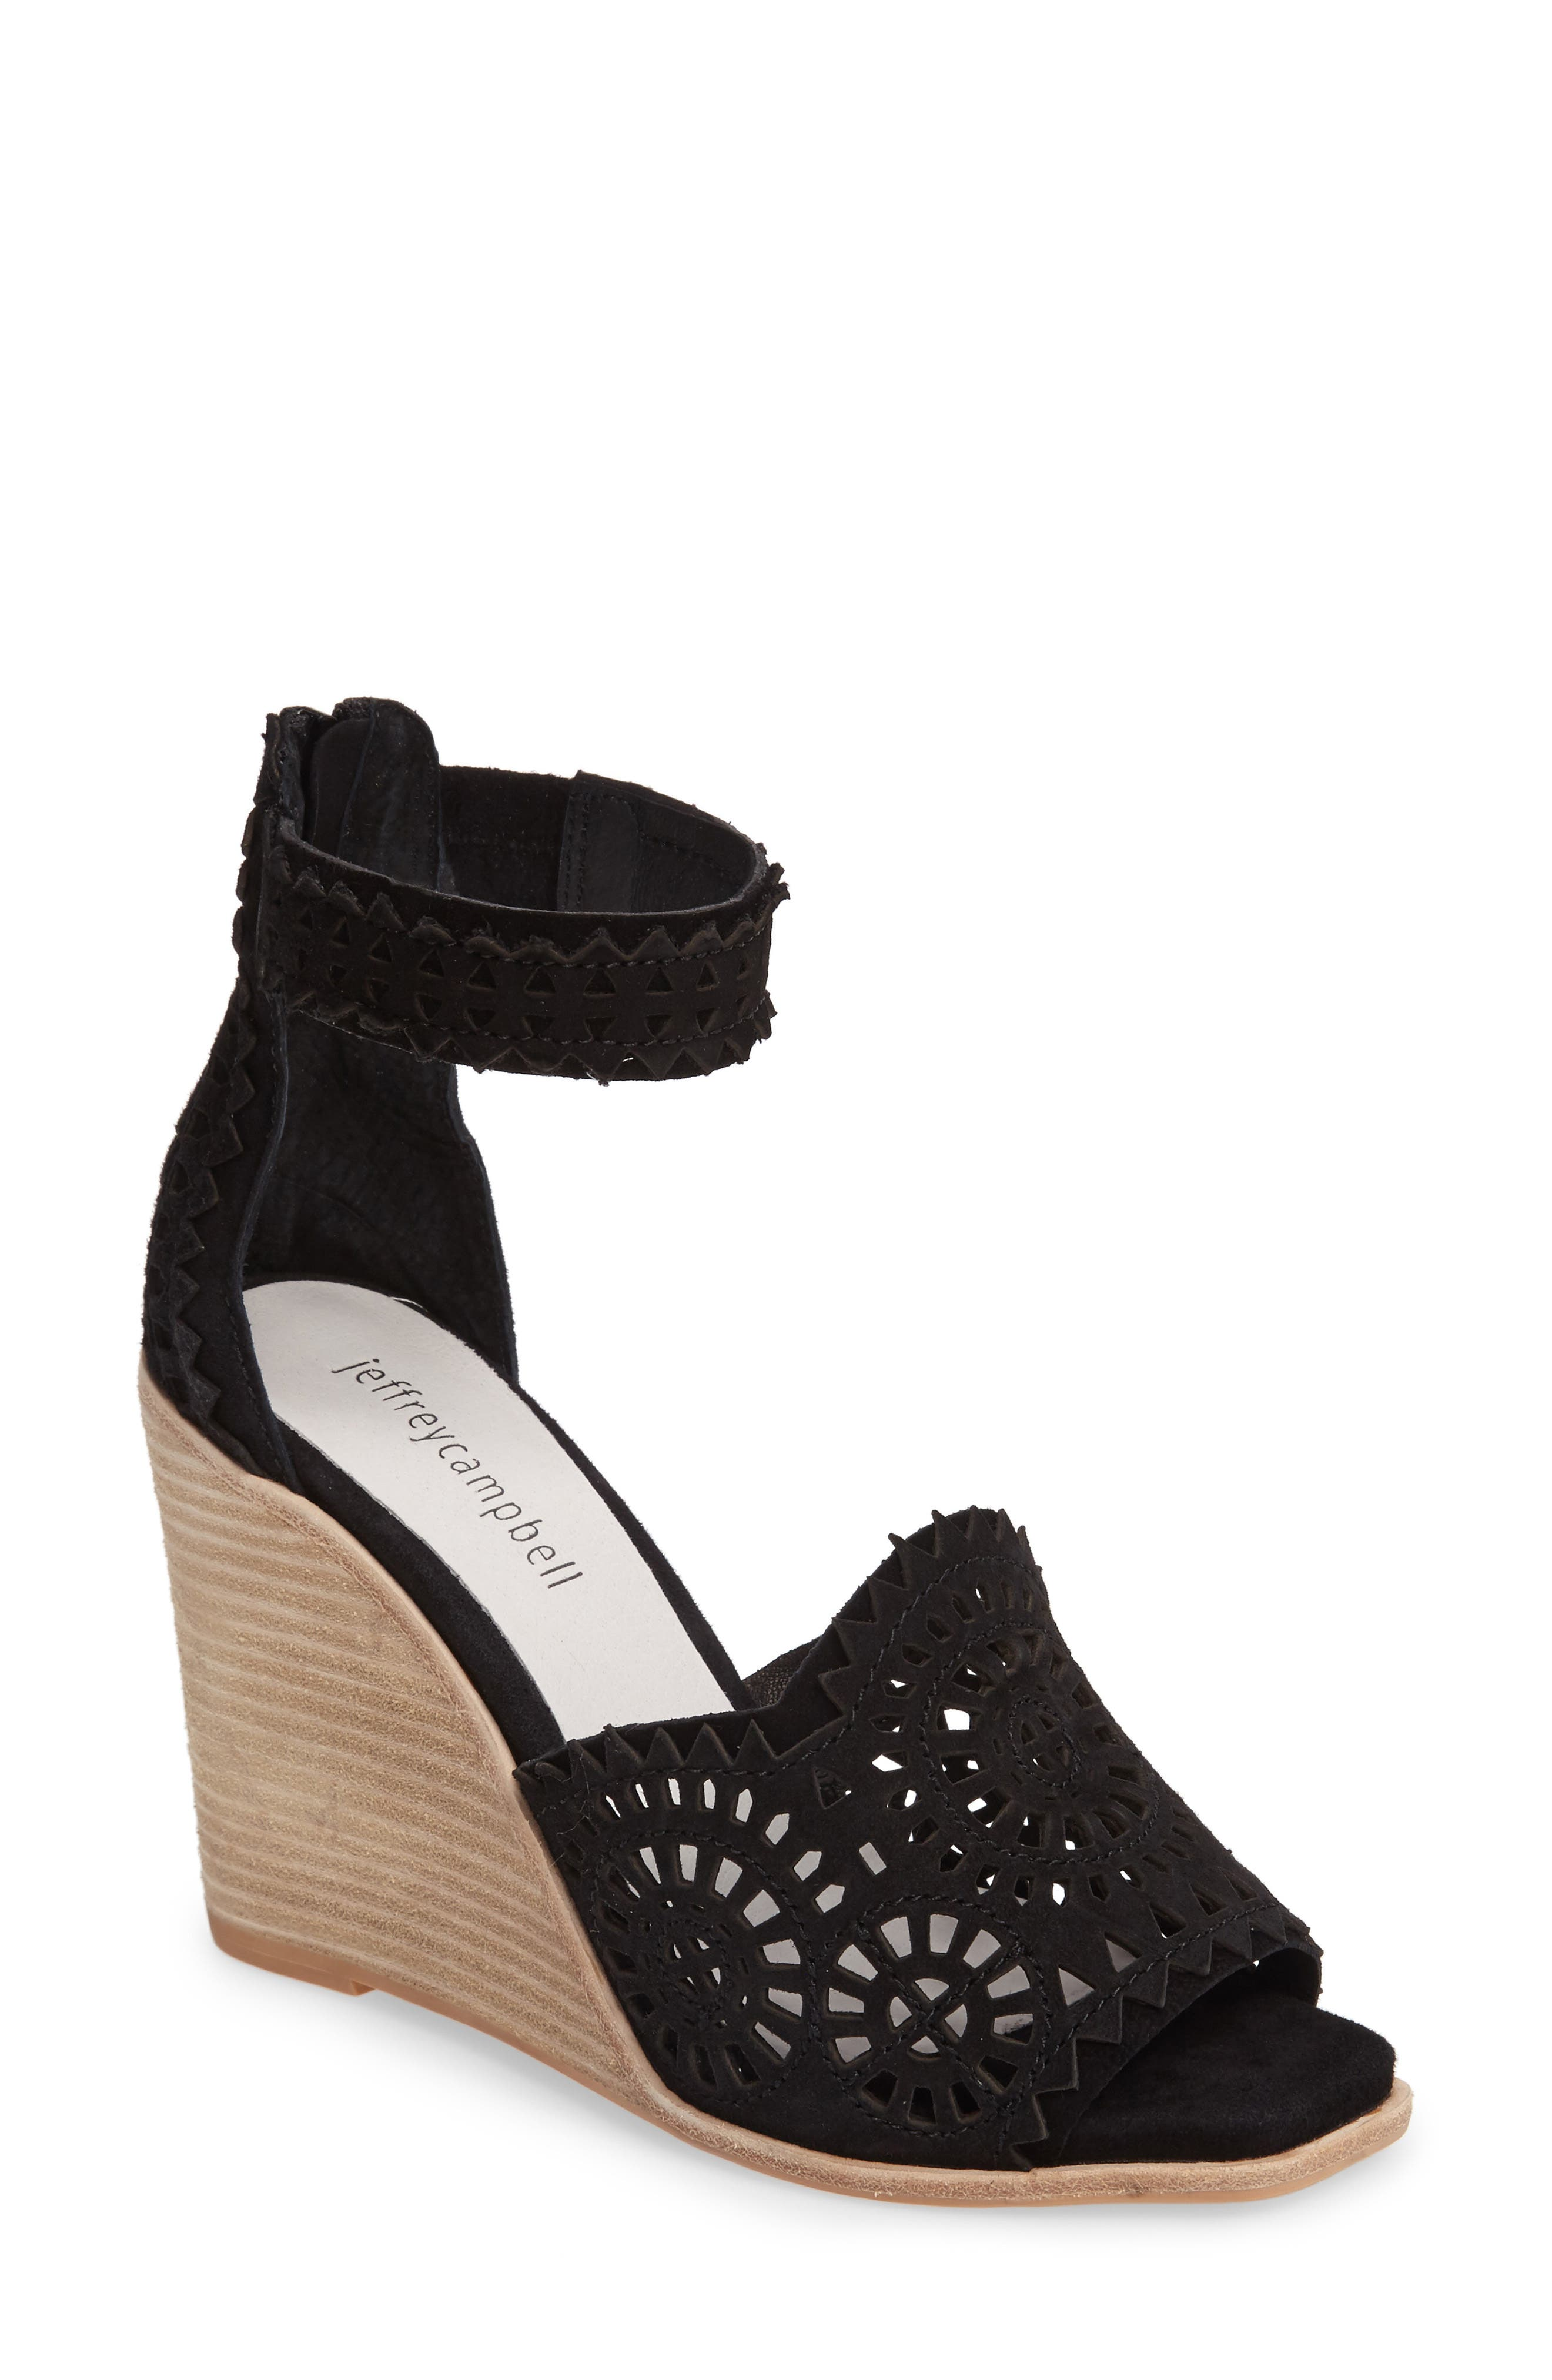 Main Image - Jeffrey Campbell Del Sol Wedge Sandal (Women)